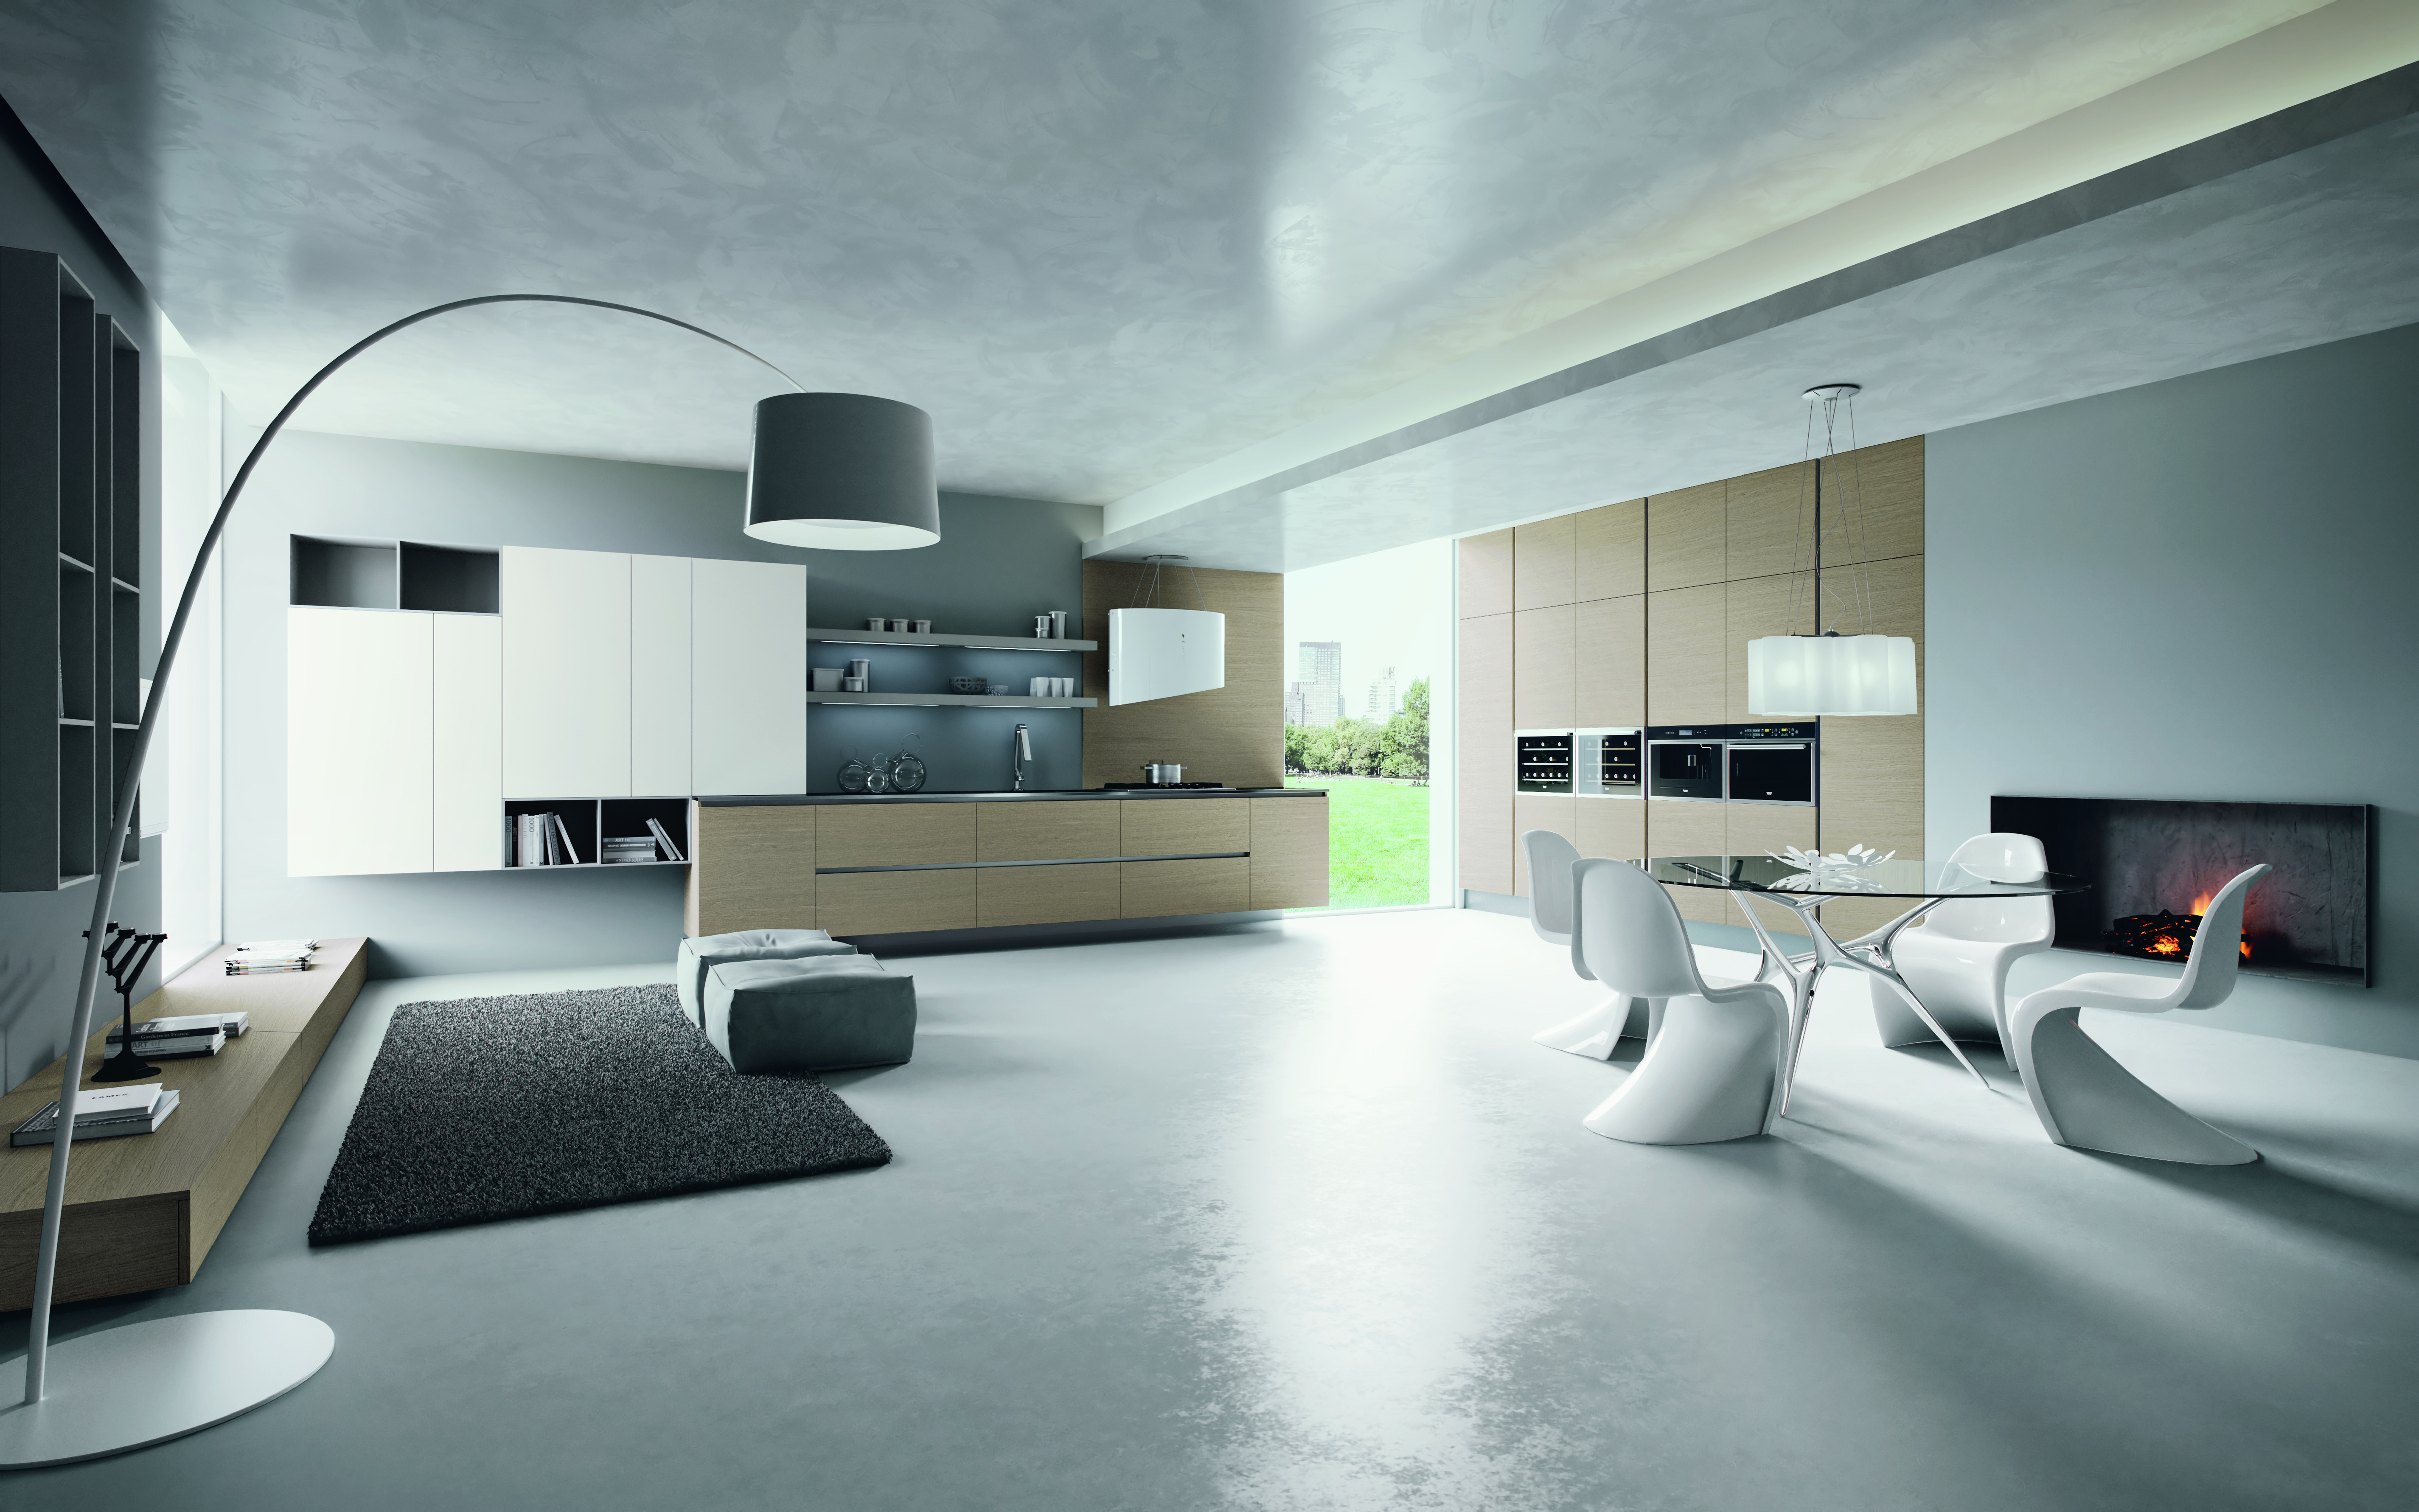 Trendy and Modern Kitchens by Arrital: 7 Best Collections for 2016 ...